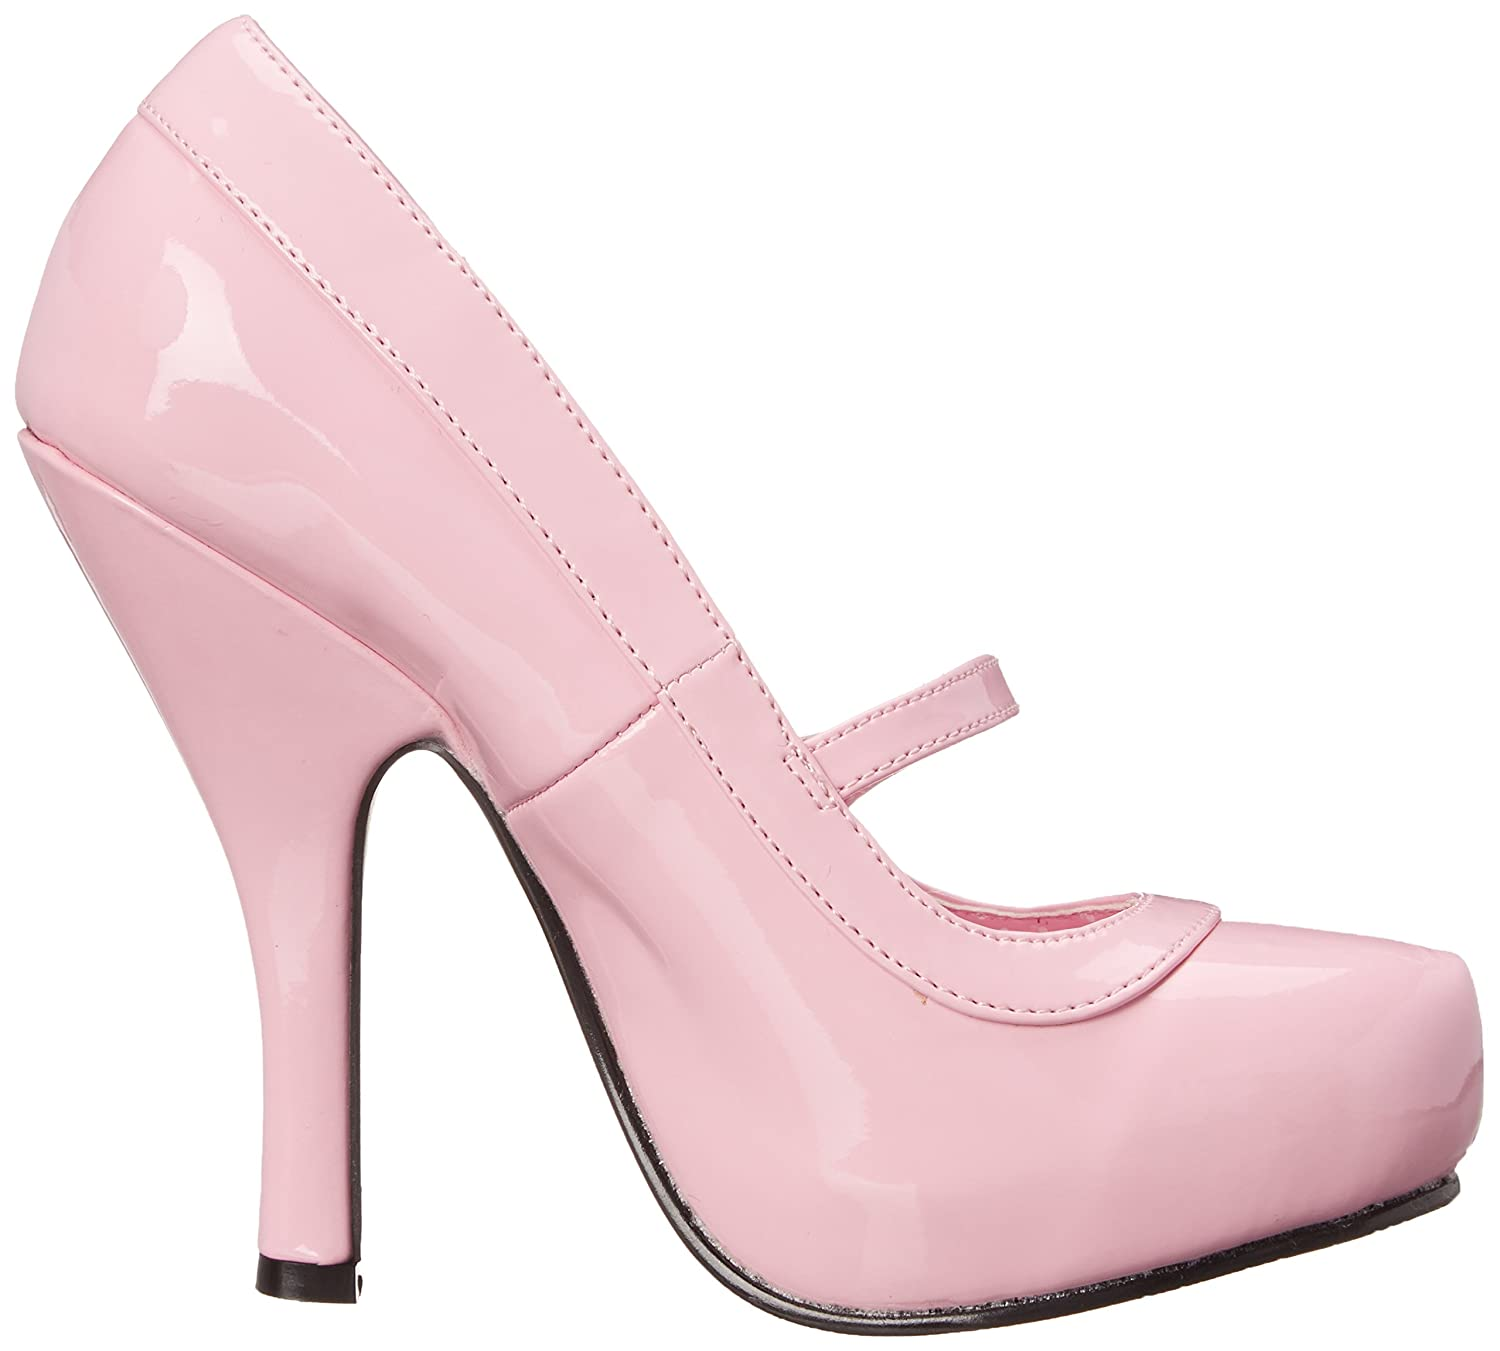 Pleaser Cutie02/bppt, Damen Pumps, Rosa (Baby Pink), 36 EU (3 UK)